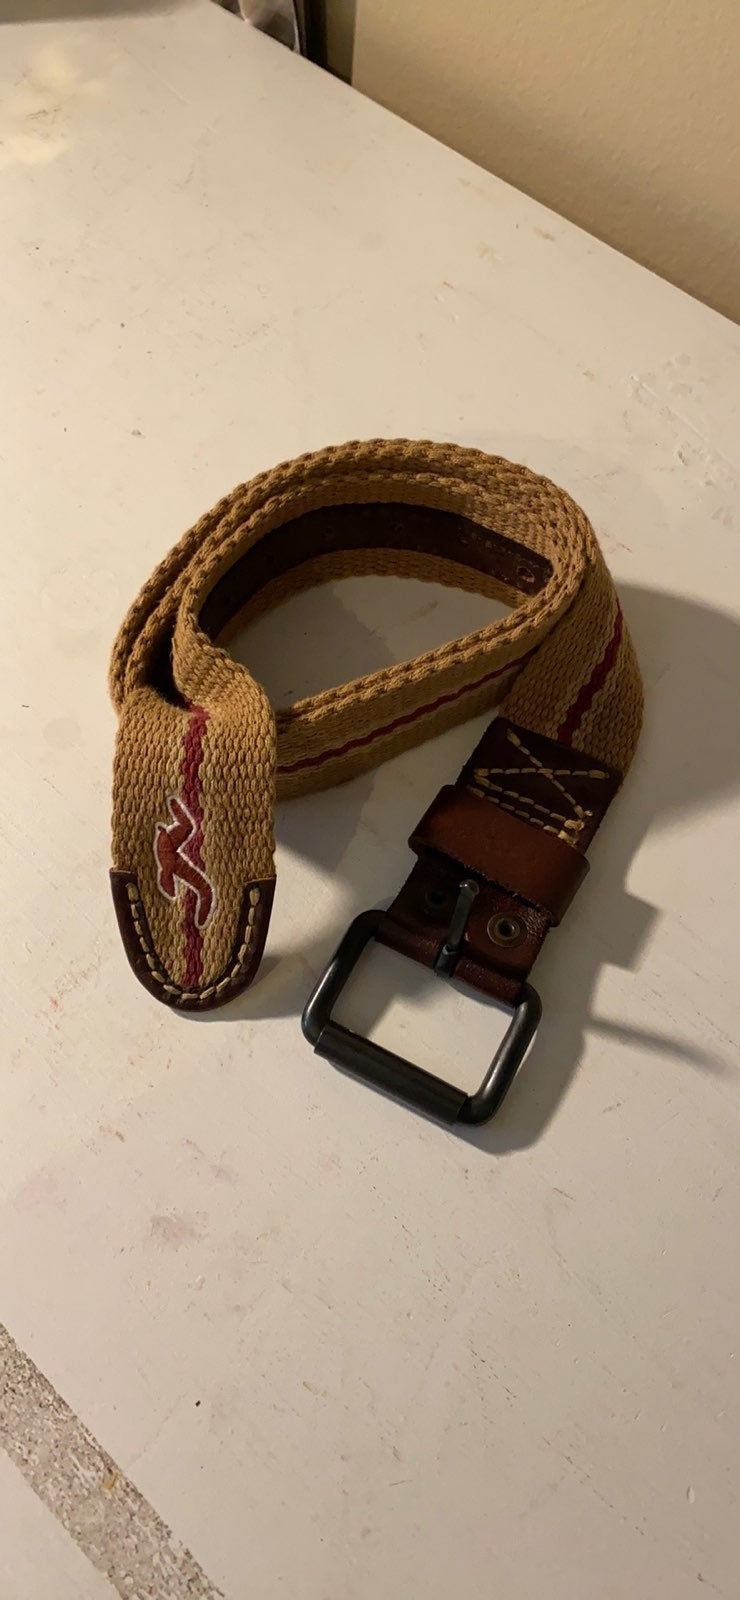 HOLLISTER CANVAS BELT Size: 34